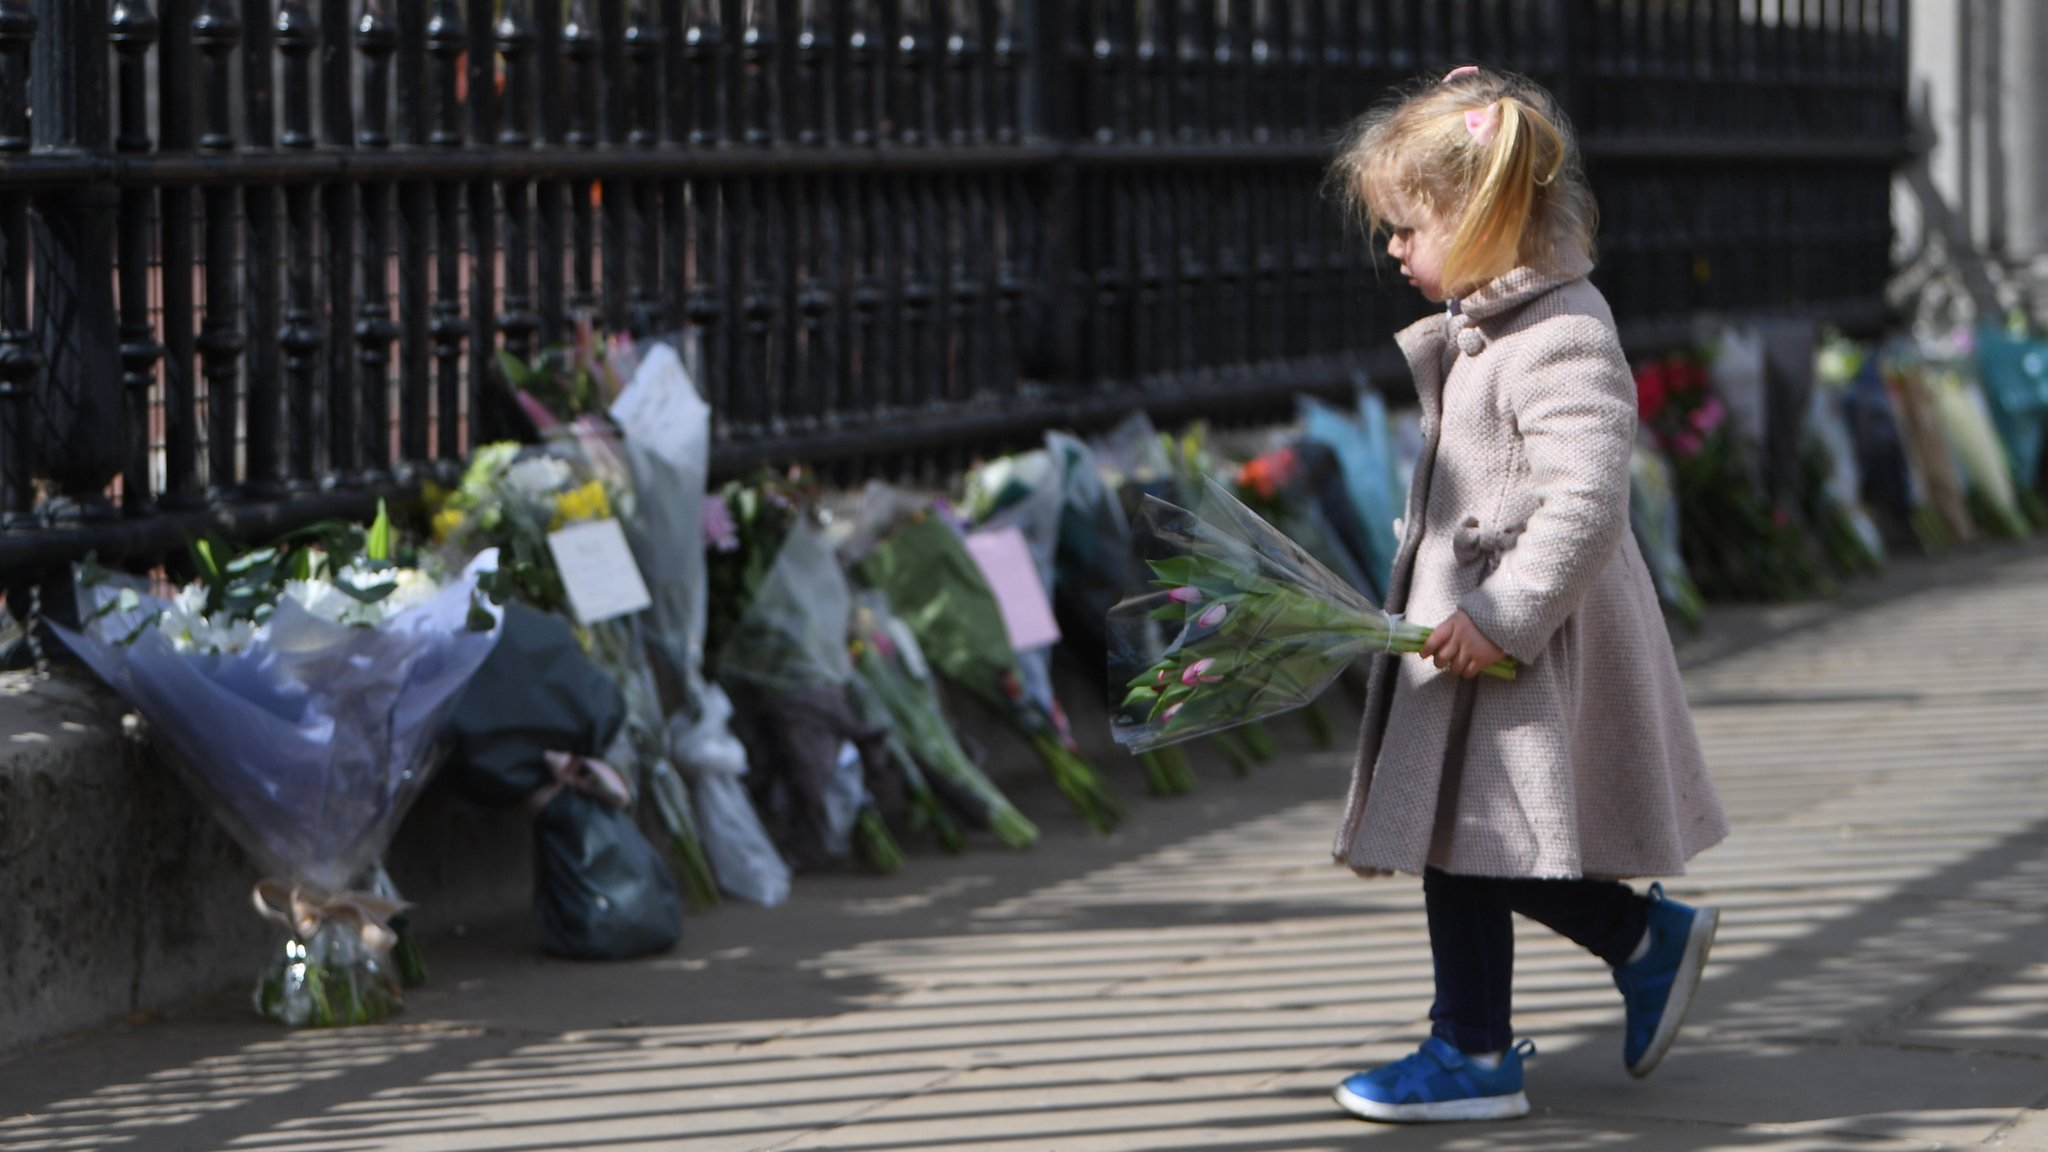 A young girl holds flowers outside Buckingham Palace on 9 April 2021